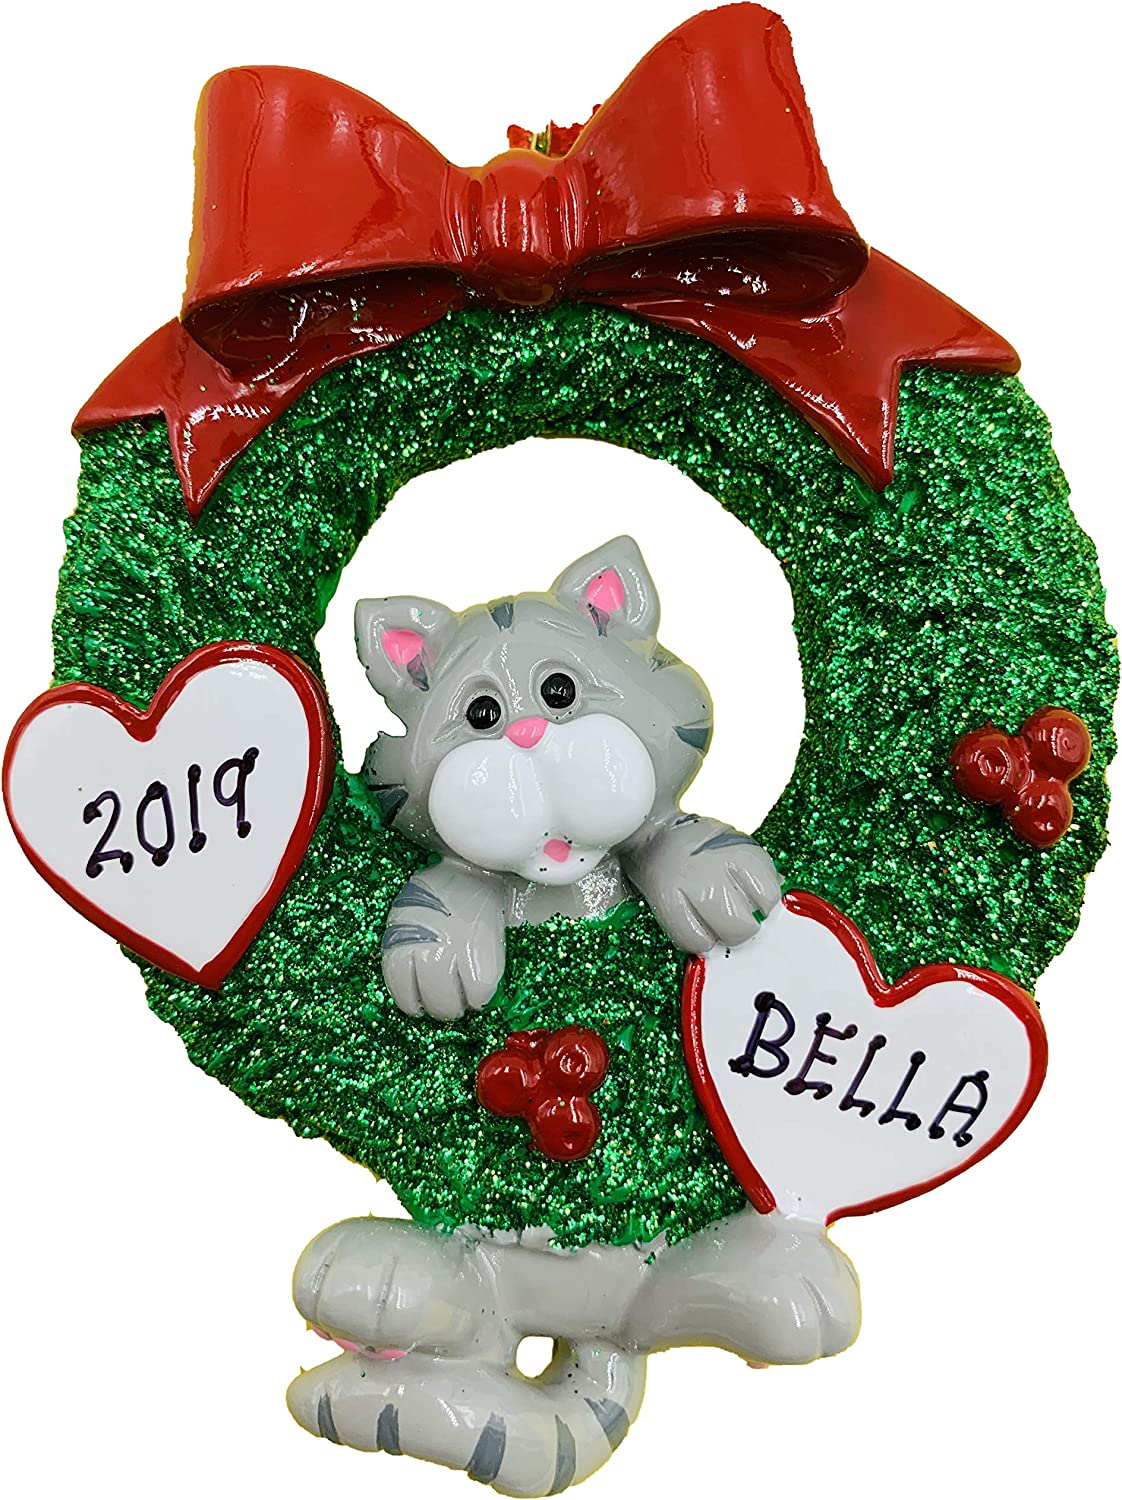 Cat Christmas Ornament 2020 Amazon.com: Personalized Gray Tabby Cat Christmas Ornament 2020